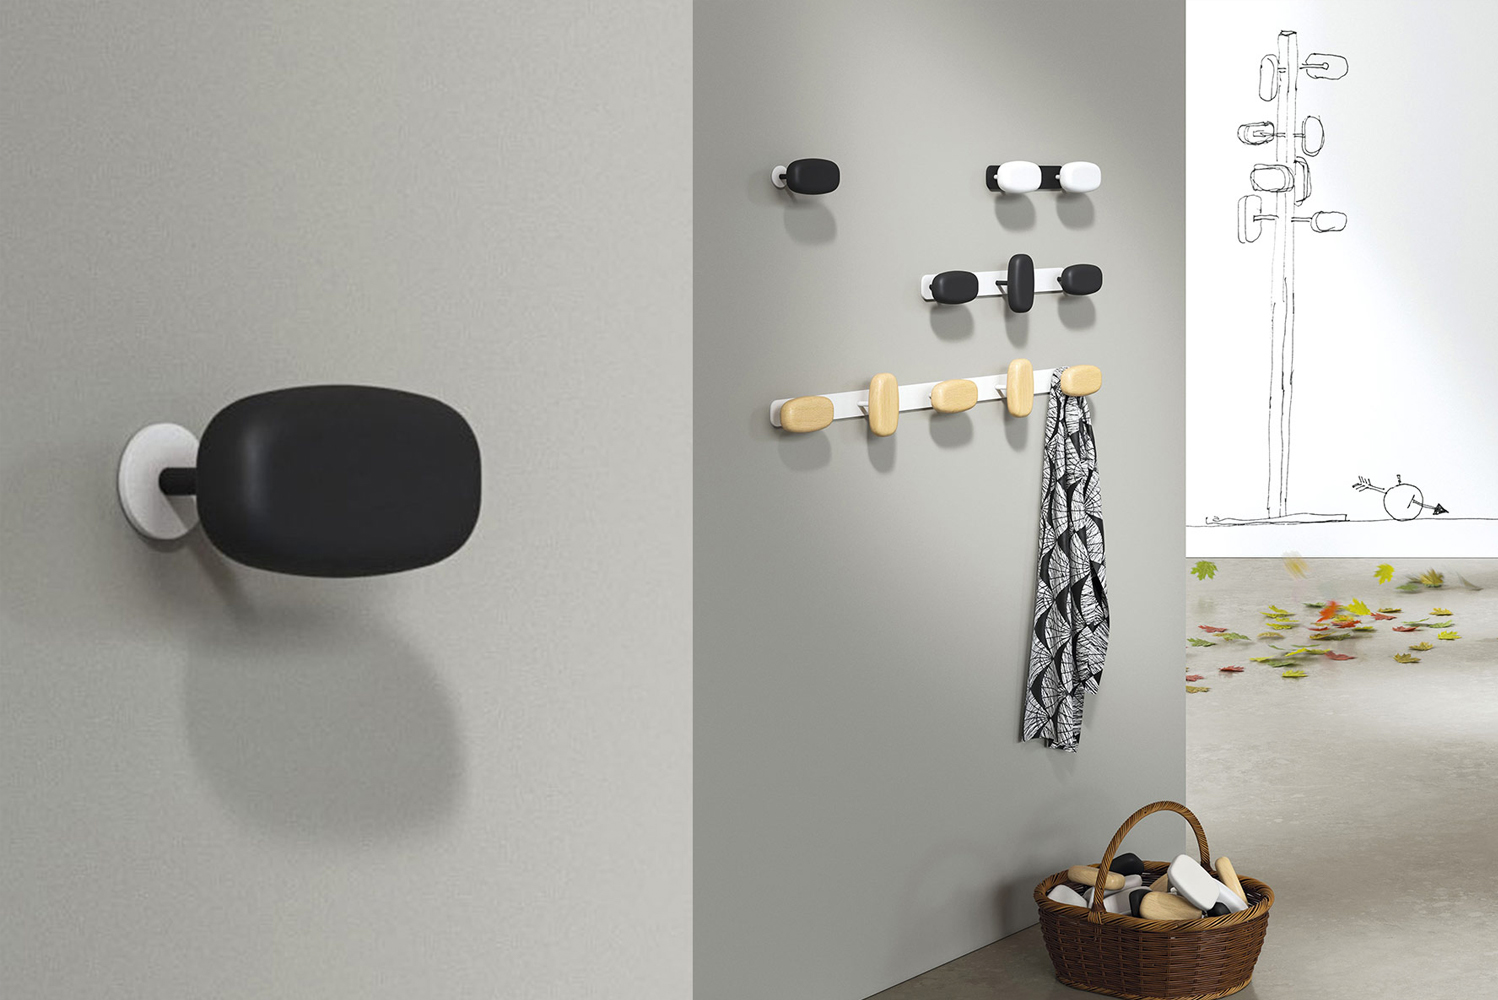 Magnuson Group launched the new Sherwood collection of magnetic hooks, coat trees and hook strips.